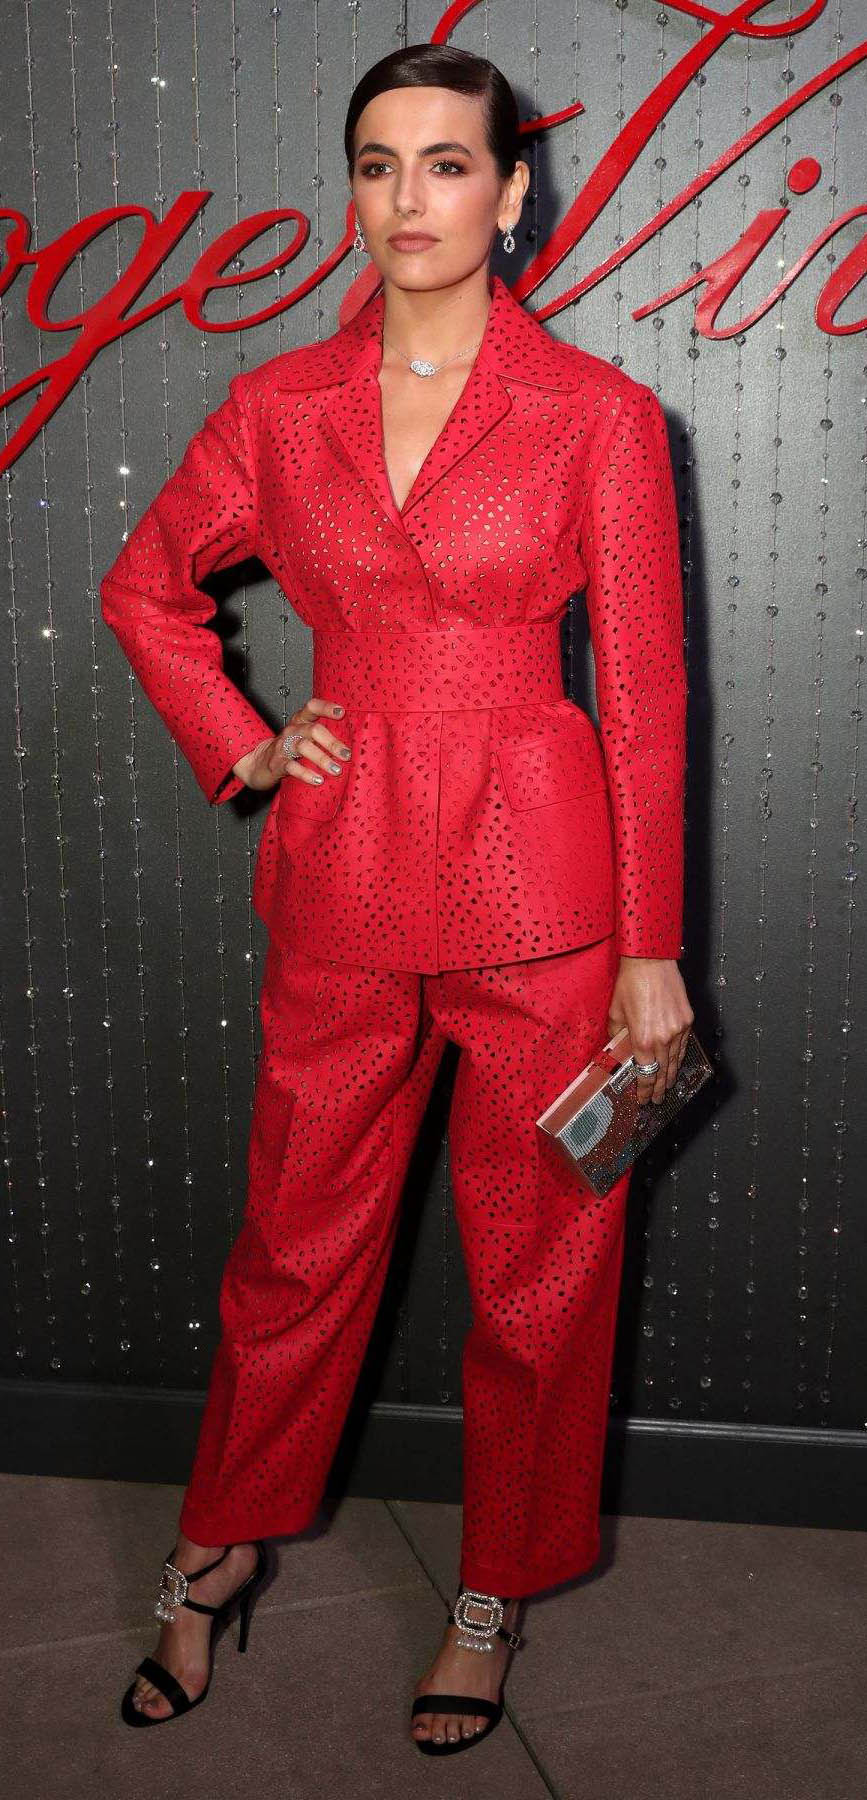 red-wideleg-pants-red-jacket-suit-earrings-black-shoe-sandalh-camillabelle-brun-spring-summer-dinner.jpg